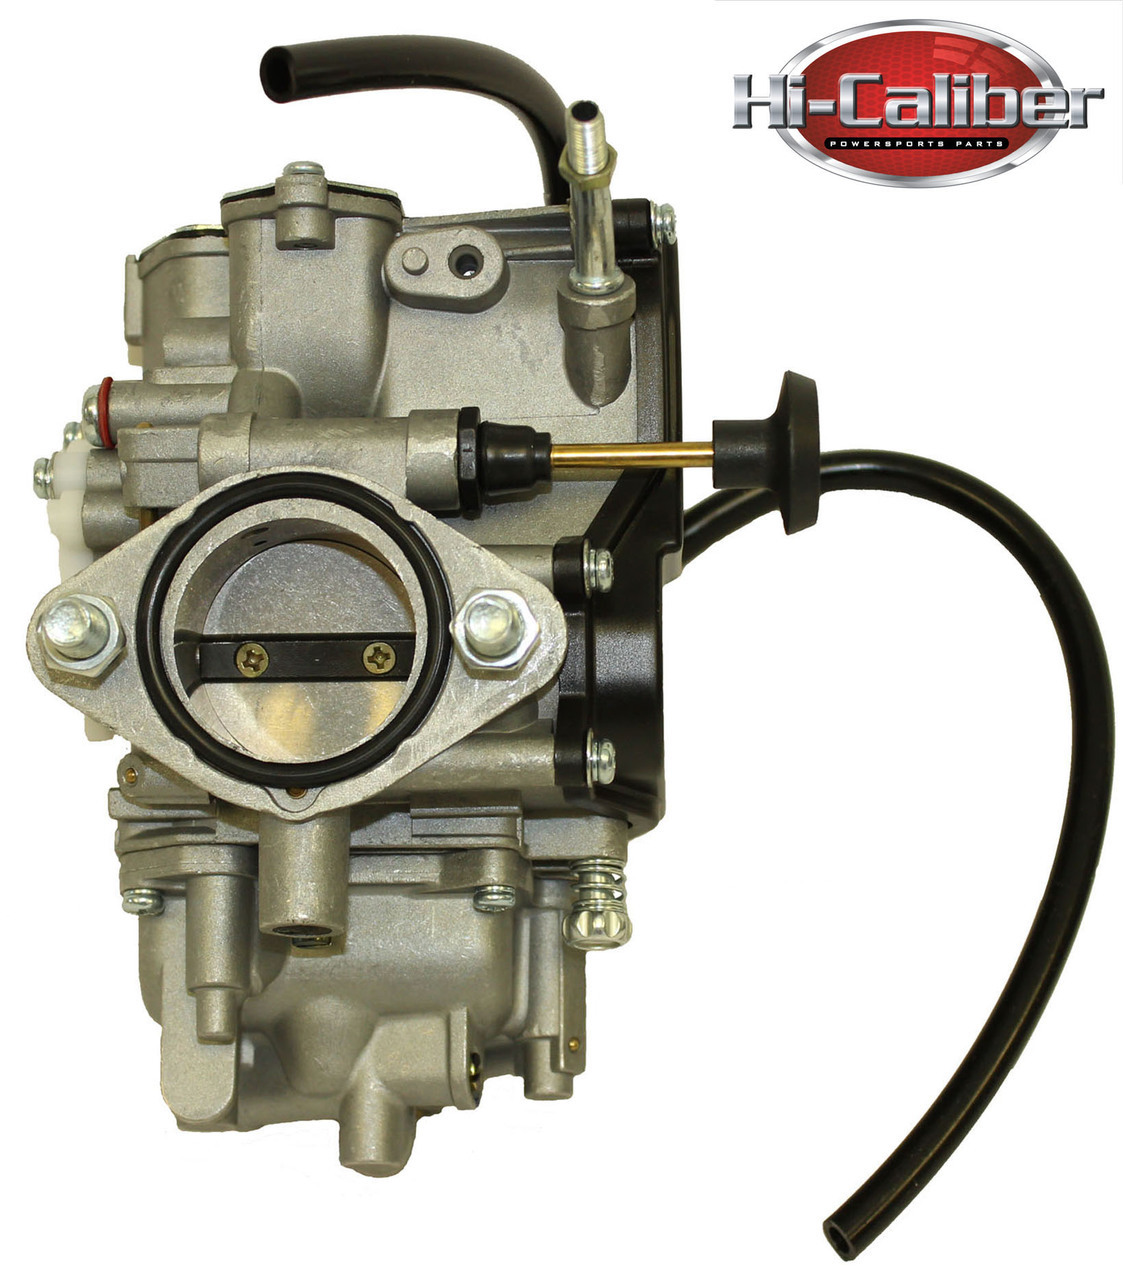 Carburetors And Rebuild Kits in addition Fuse Box Diagram For 54 Plate Astra Diesel besides 2016 Honda 500 Foreman Rubicon Atv  parison Review Specs Fourtrax Trx500 Four Wheeler further Foreman es together with Team Limo. on arctic cat 300 specs